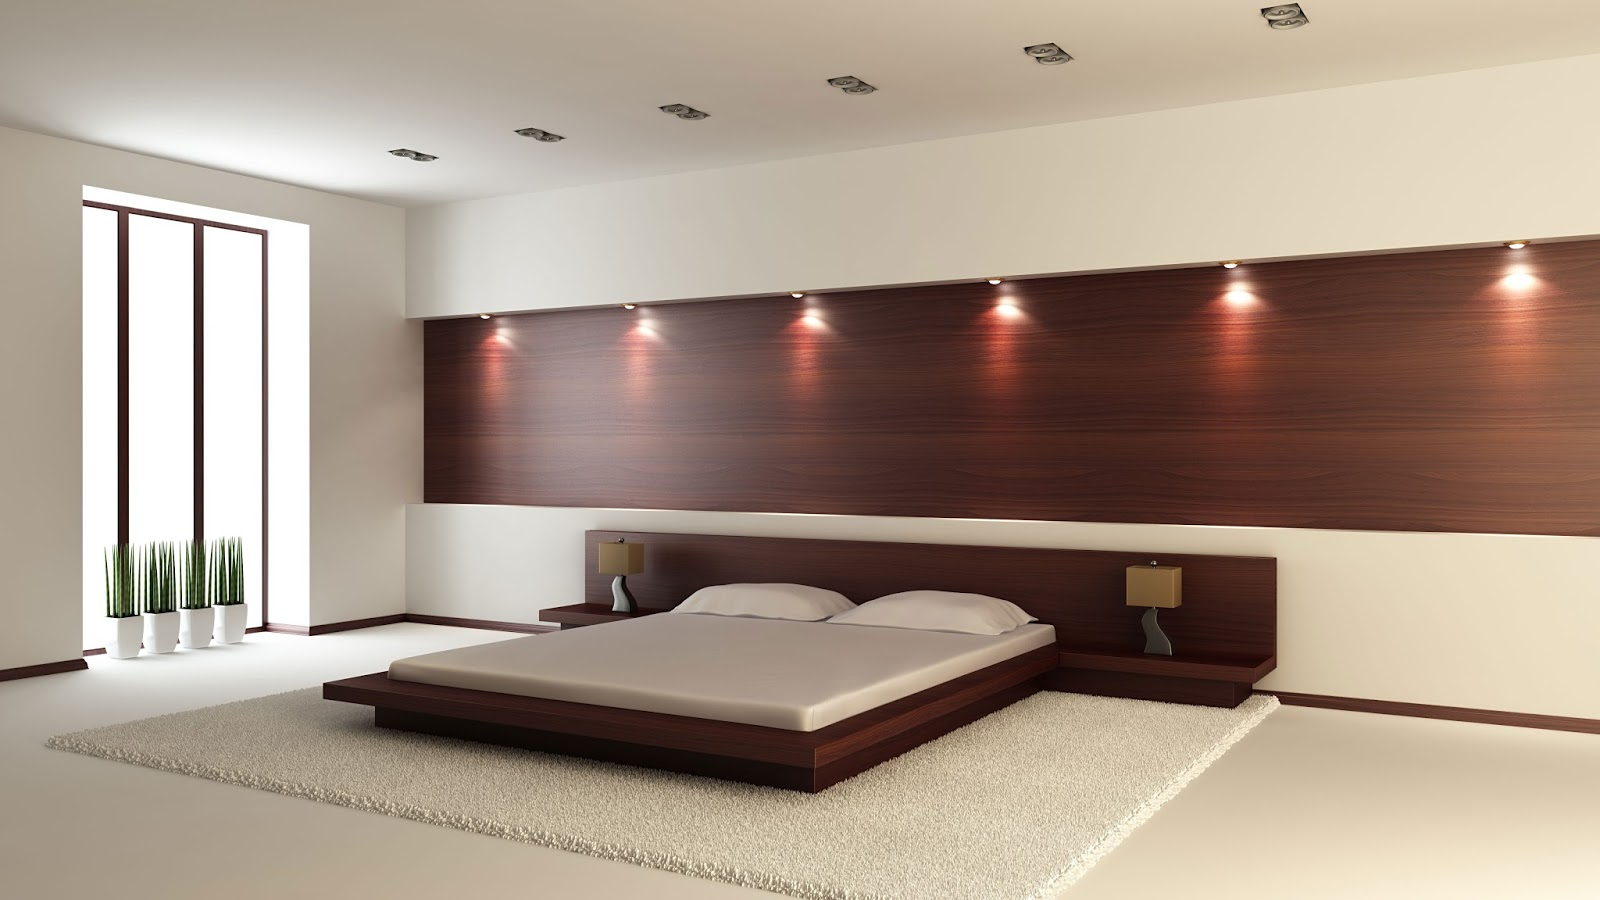 ... Planning To Move In Into A New Home, Or Maybe Just Renovate Your Old  One, Then Maybe You Would Love To Find Some Inspiration For Your Bedroom  Design.